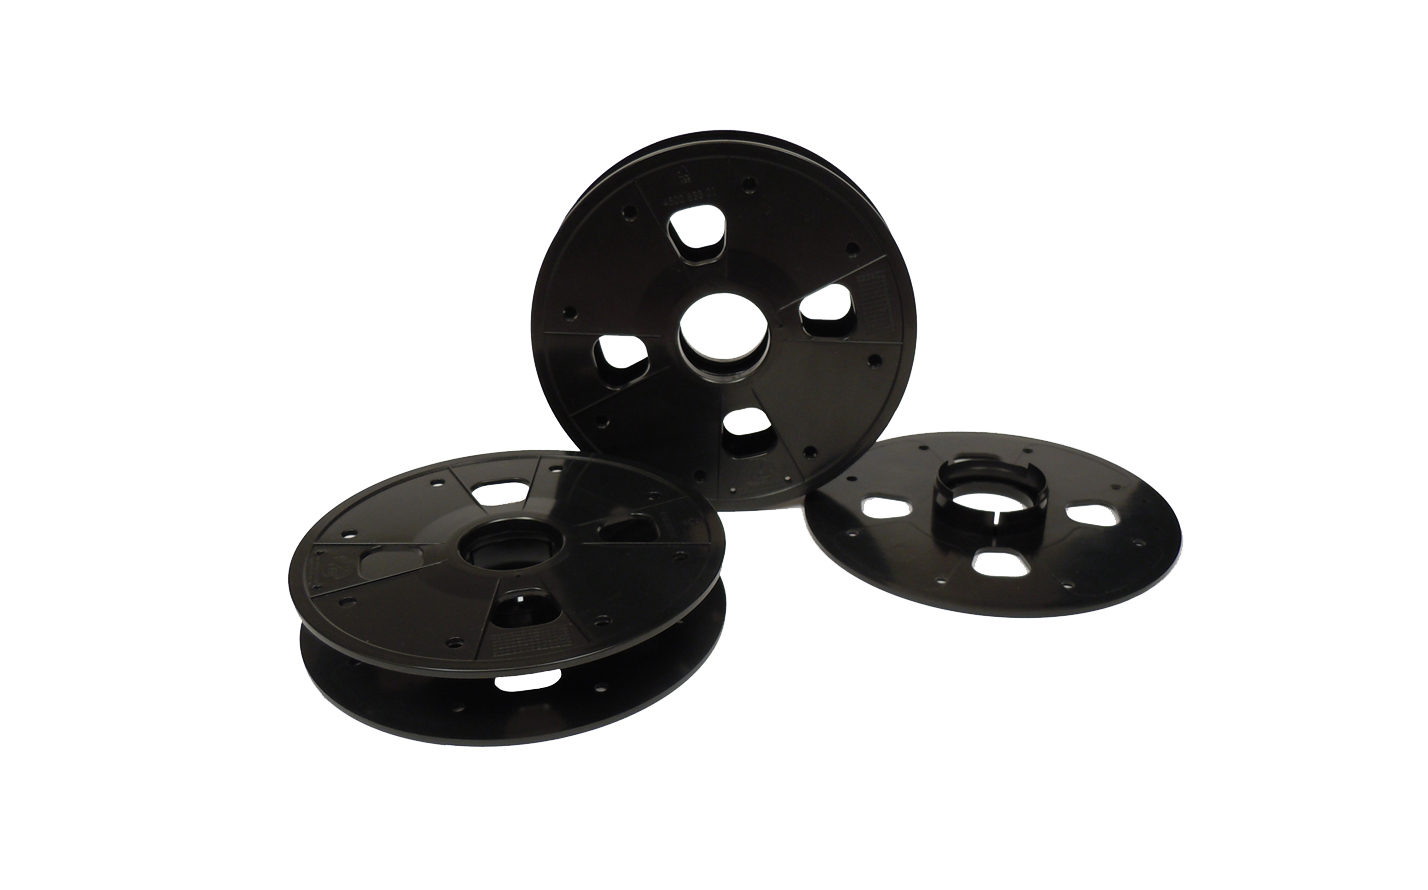 Plastic Reels and Drums